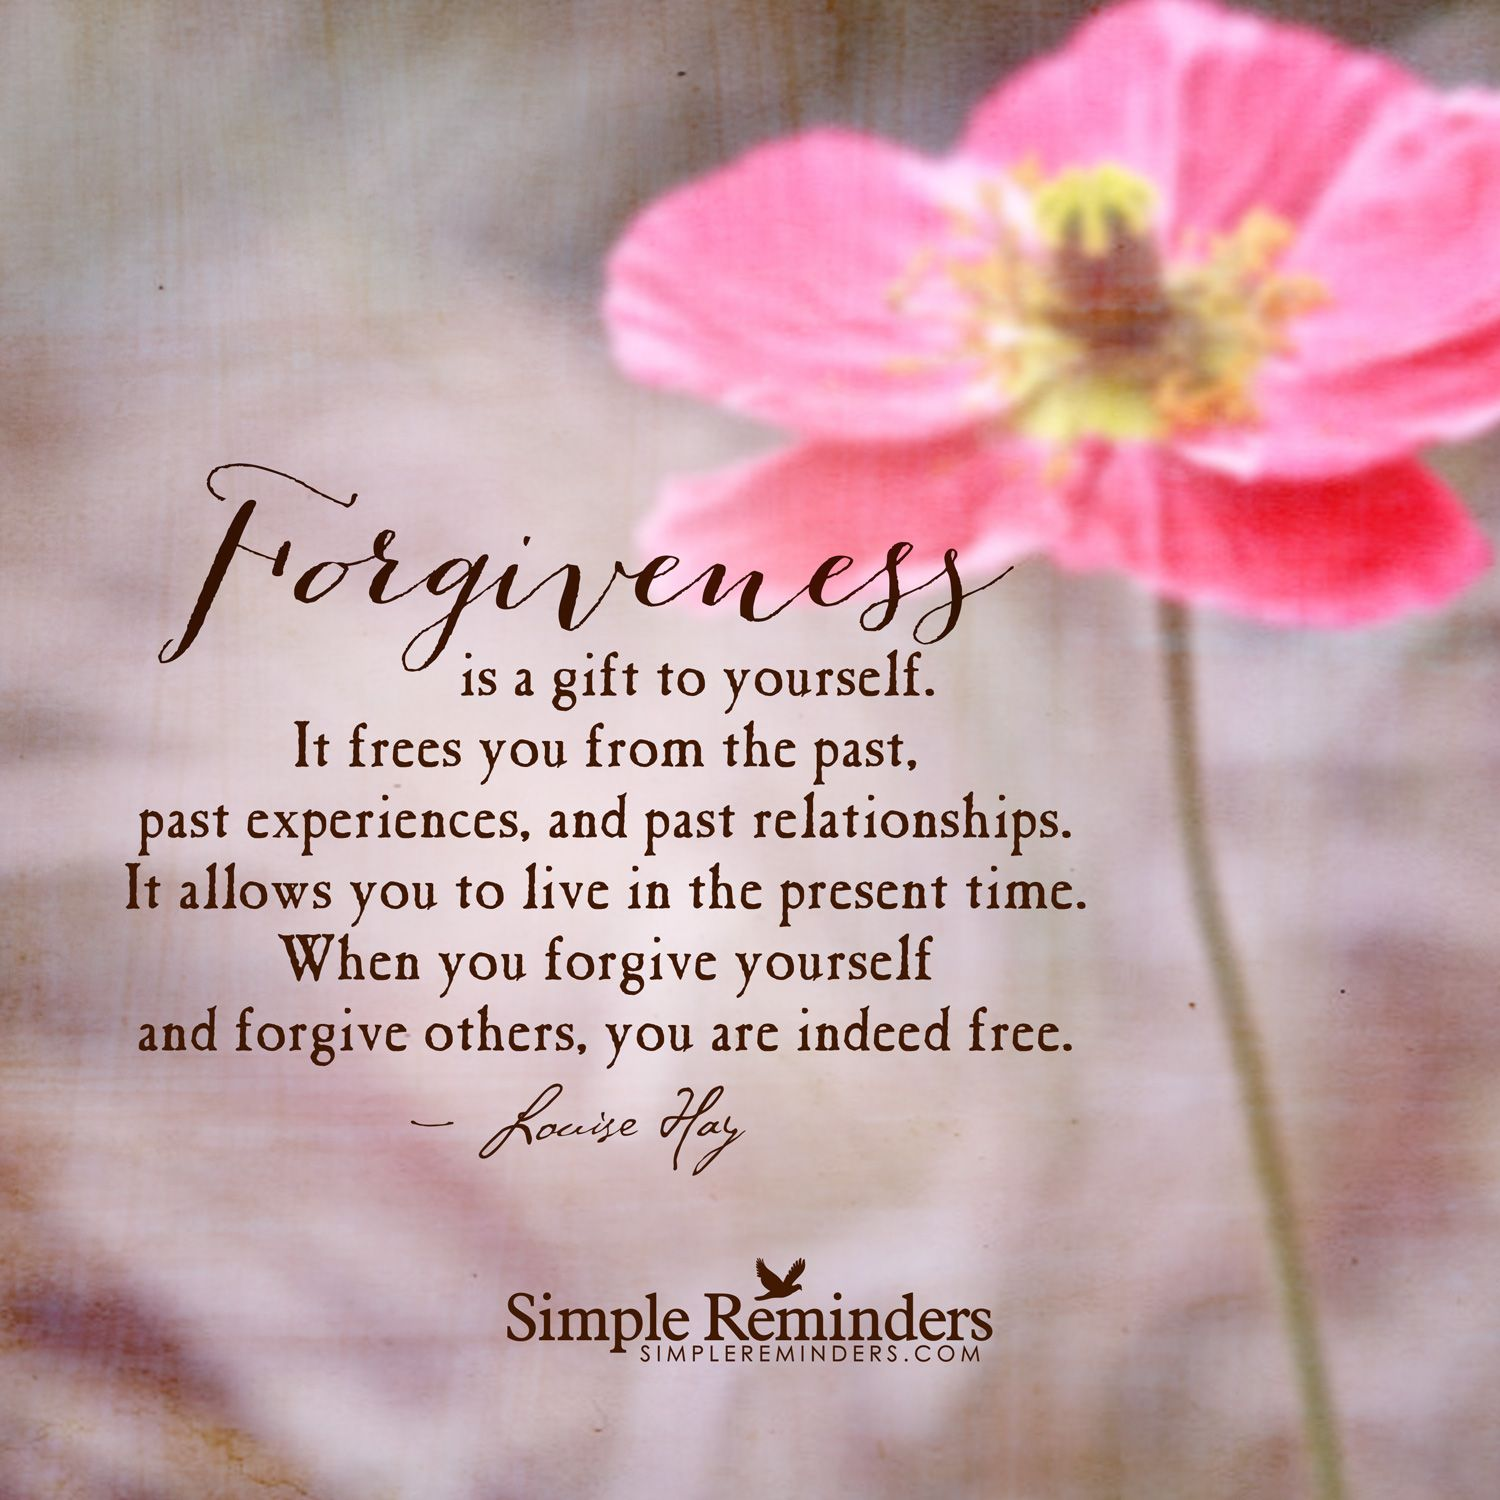 Quotes Forgiveness Love Relationships: Forgiveness Is A Gift To Yourself. It Frees You From The